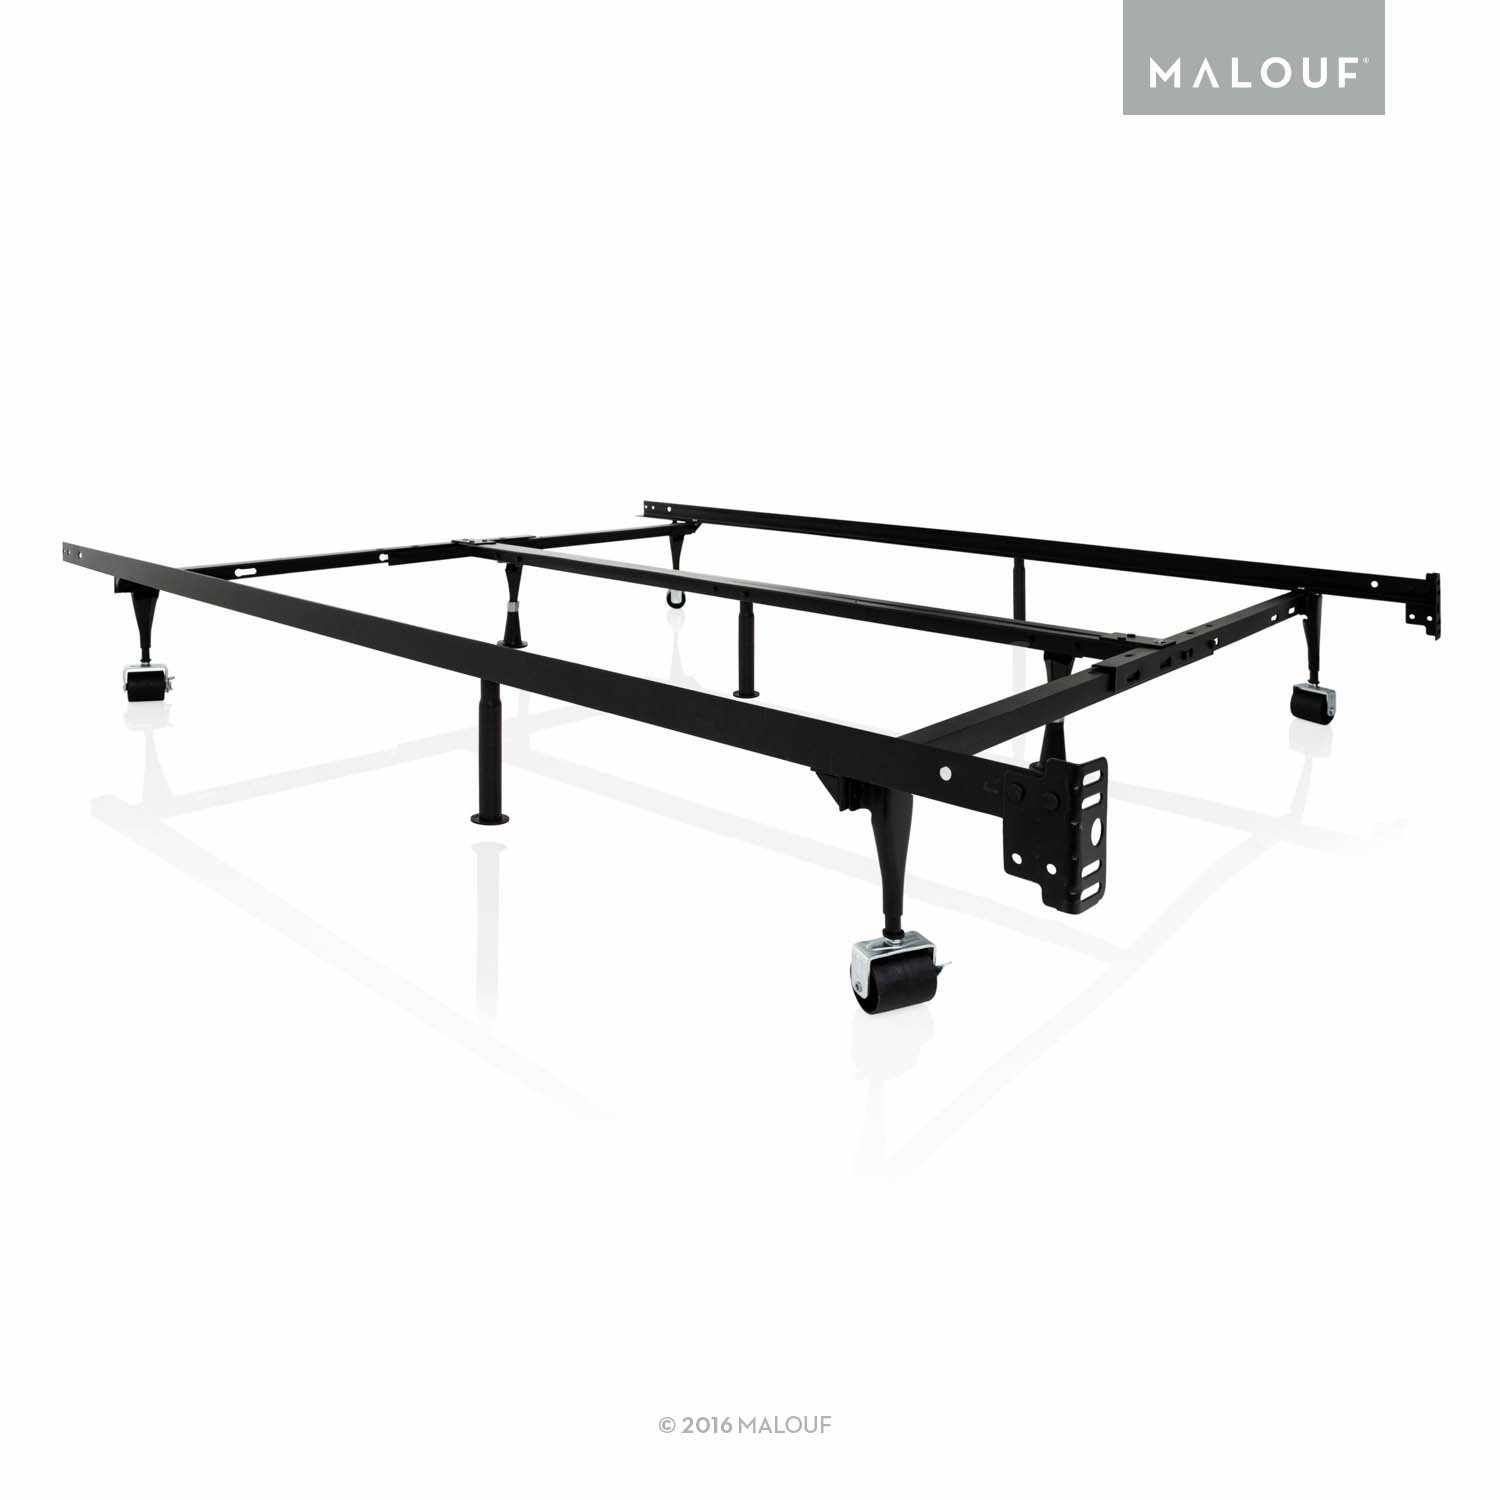 big sale db36f d8a5e STRUCTURES by Malouf Heavy Duty 9-Leg Adjustable Metal Bed Frame with  Center Support and Rug Rollers - UNIVERSAL (King, Cal King, Queen, Full,  Twin ...